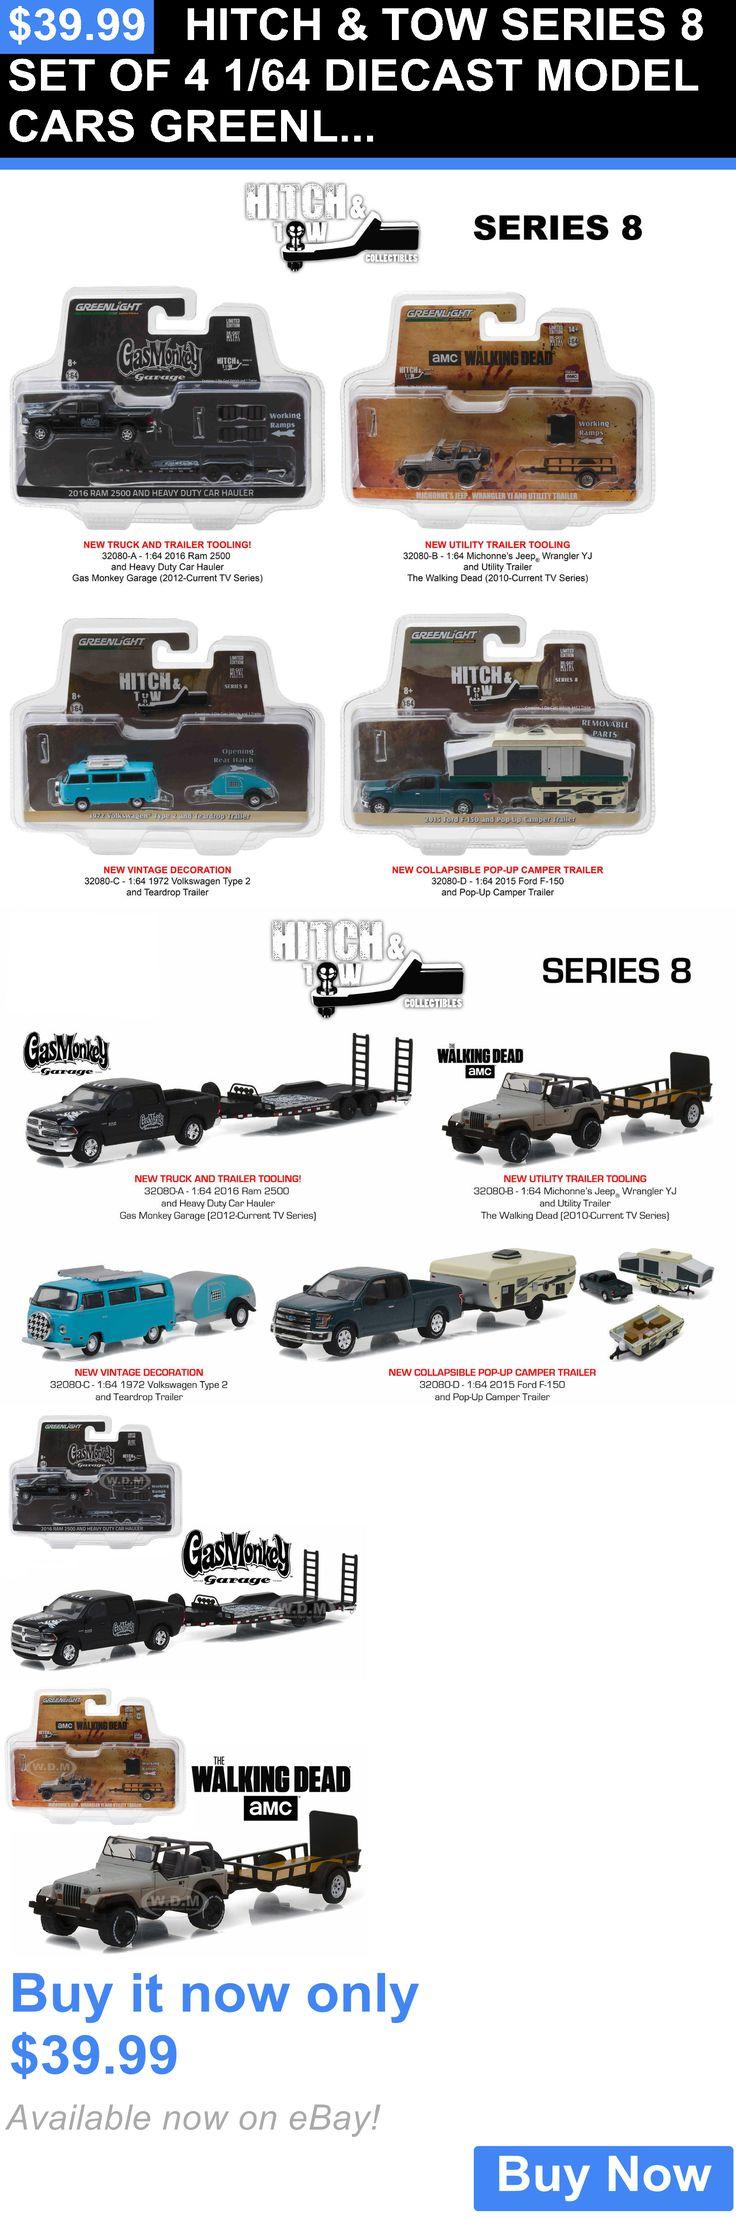 Toys and games hitch and tow series 8 set of 4 1 64 diecast